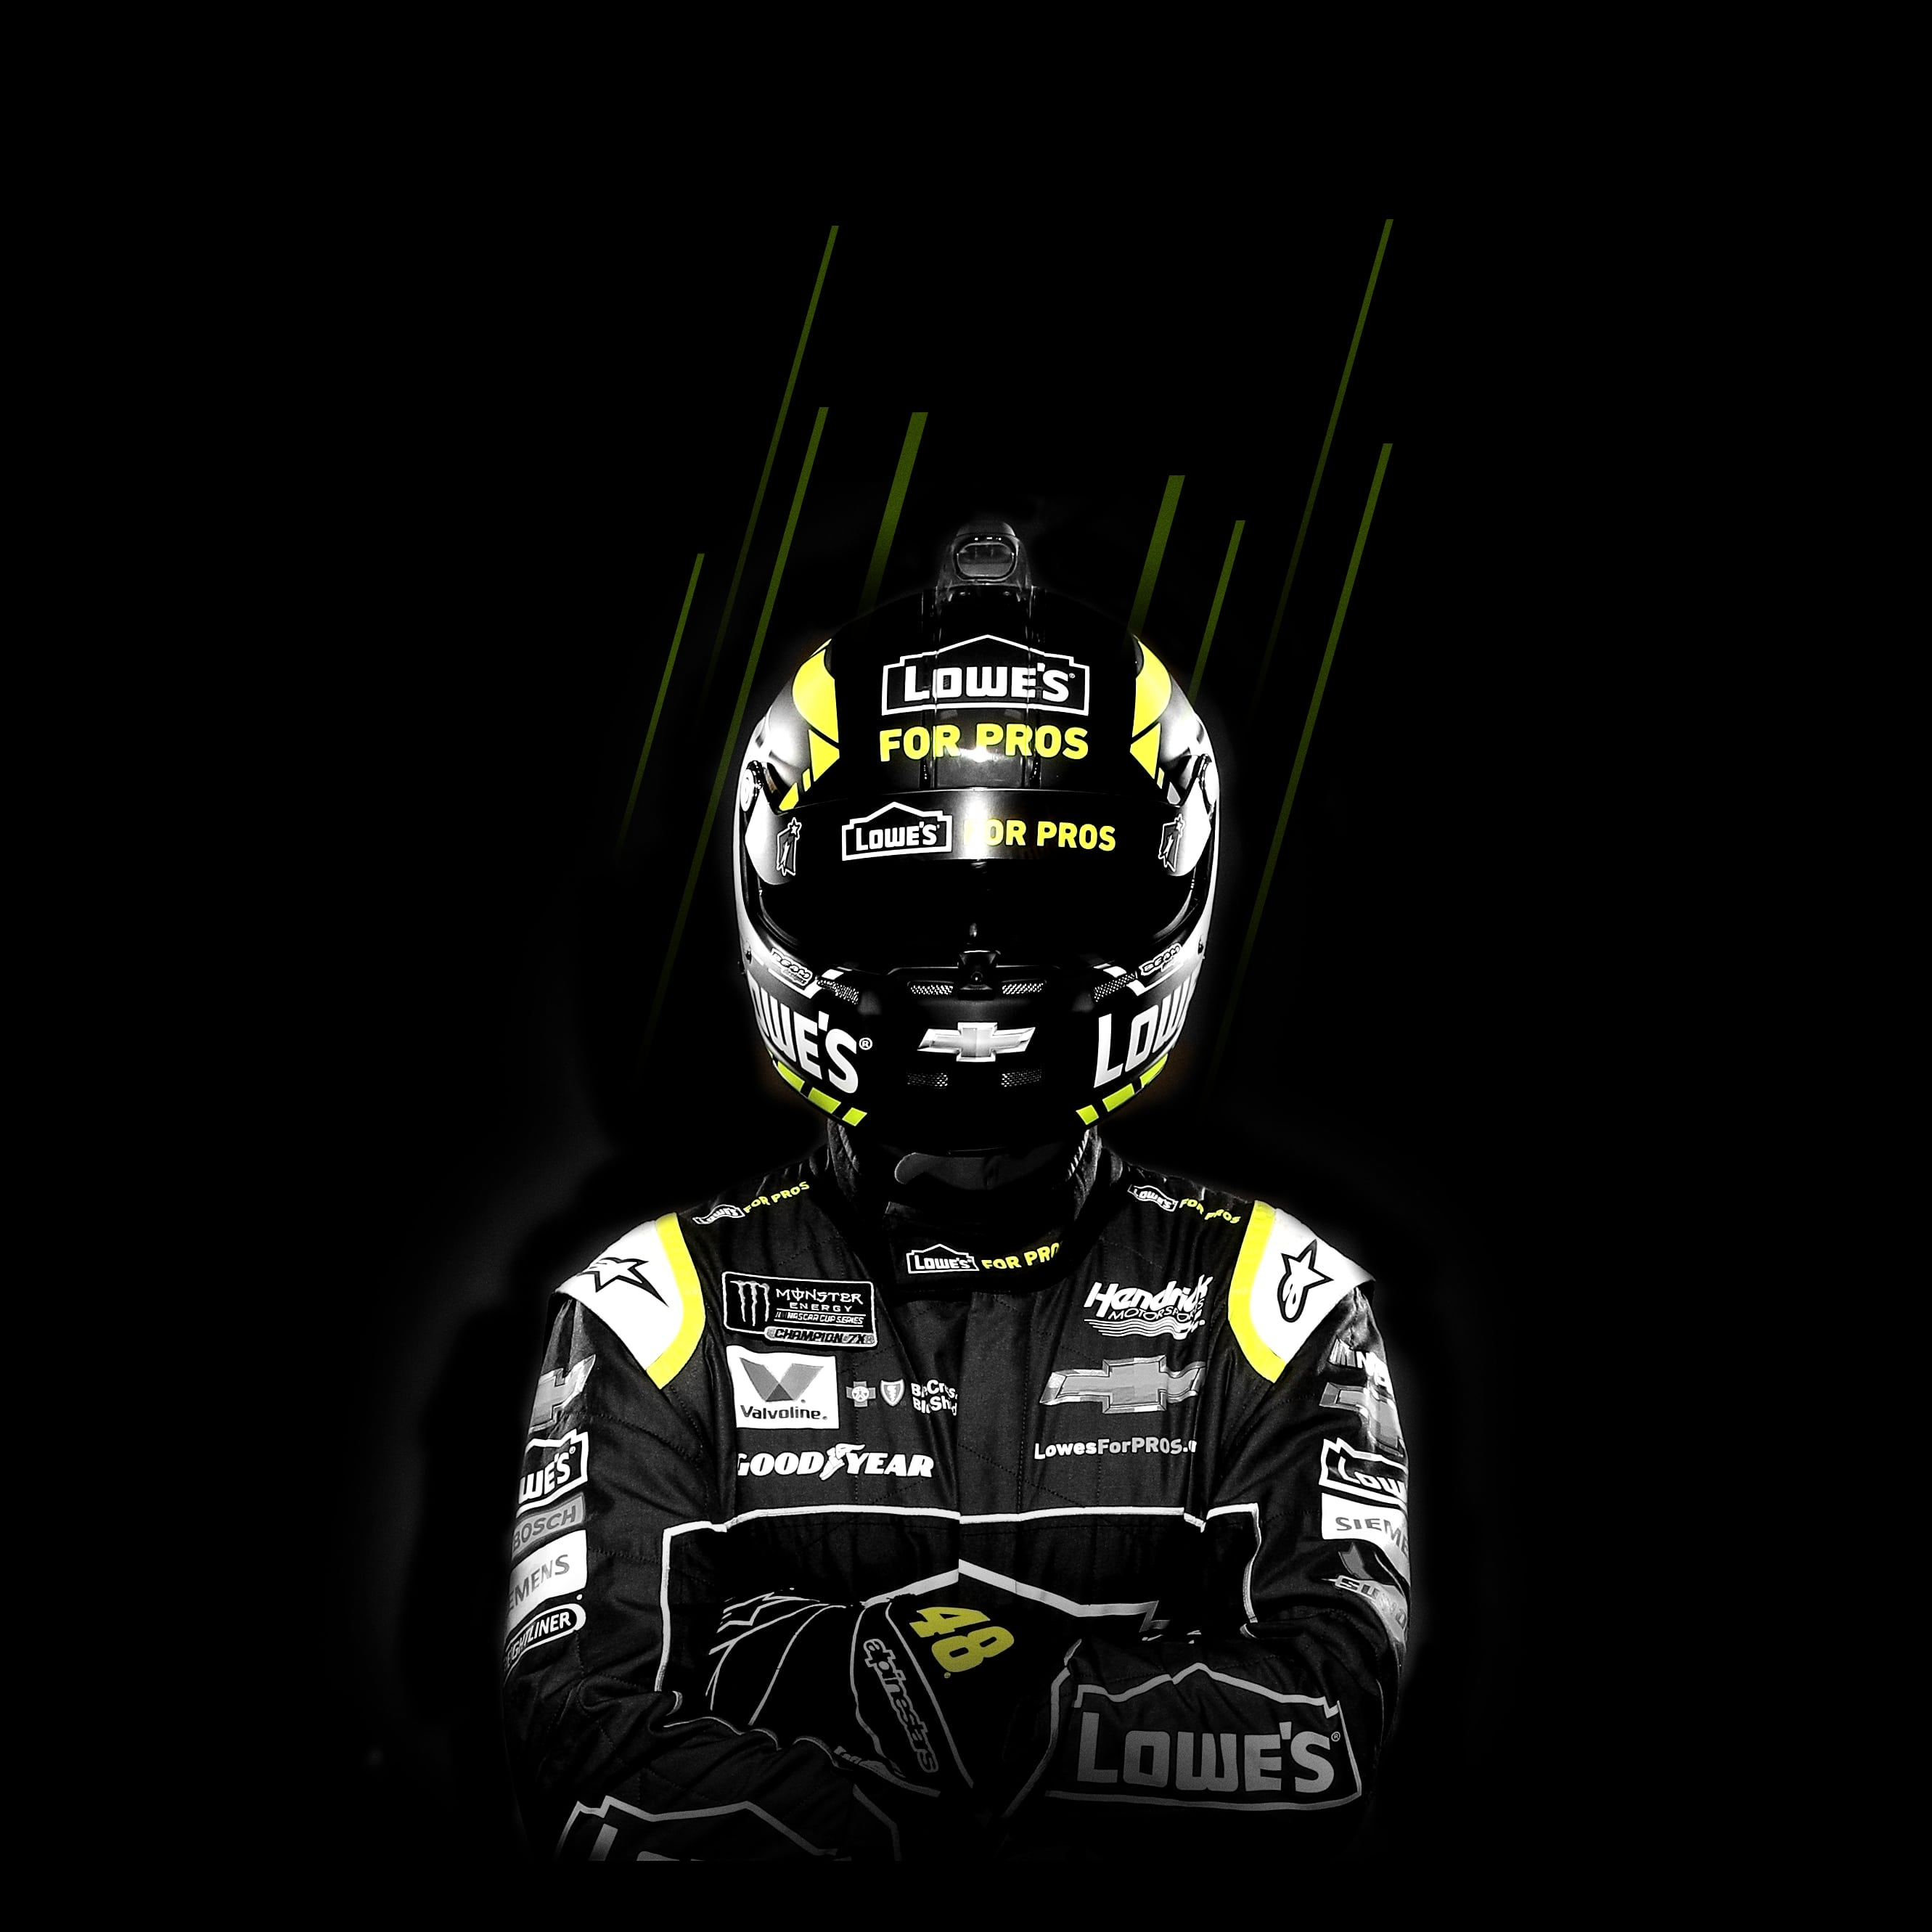 NASCAR Race Wallpapers